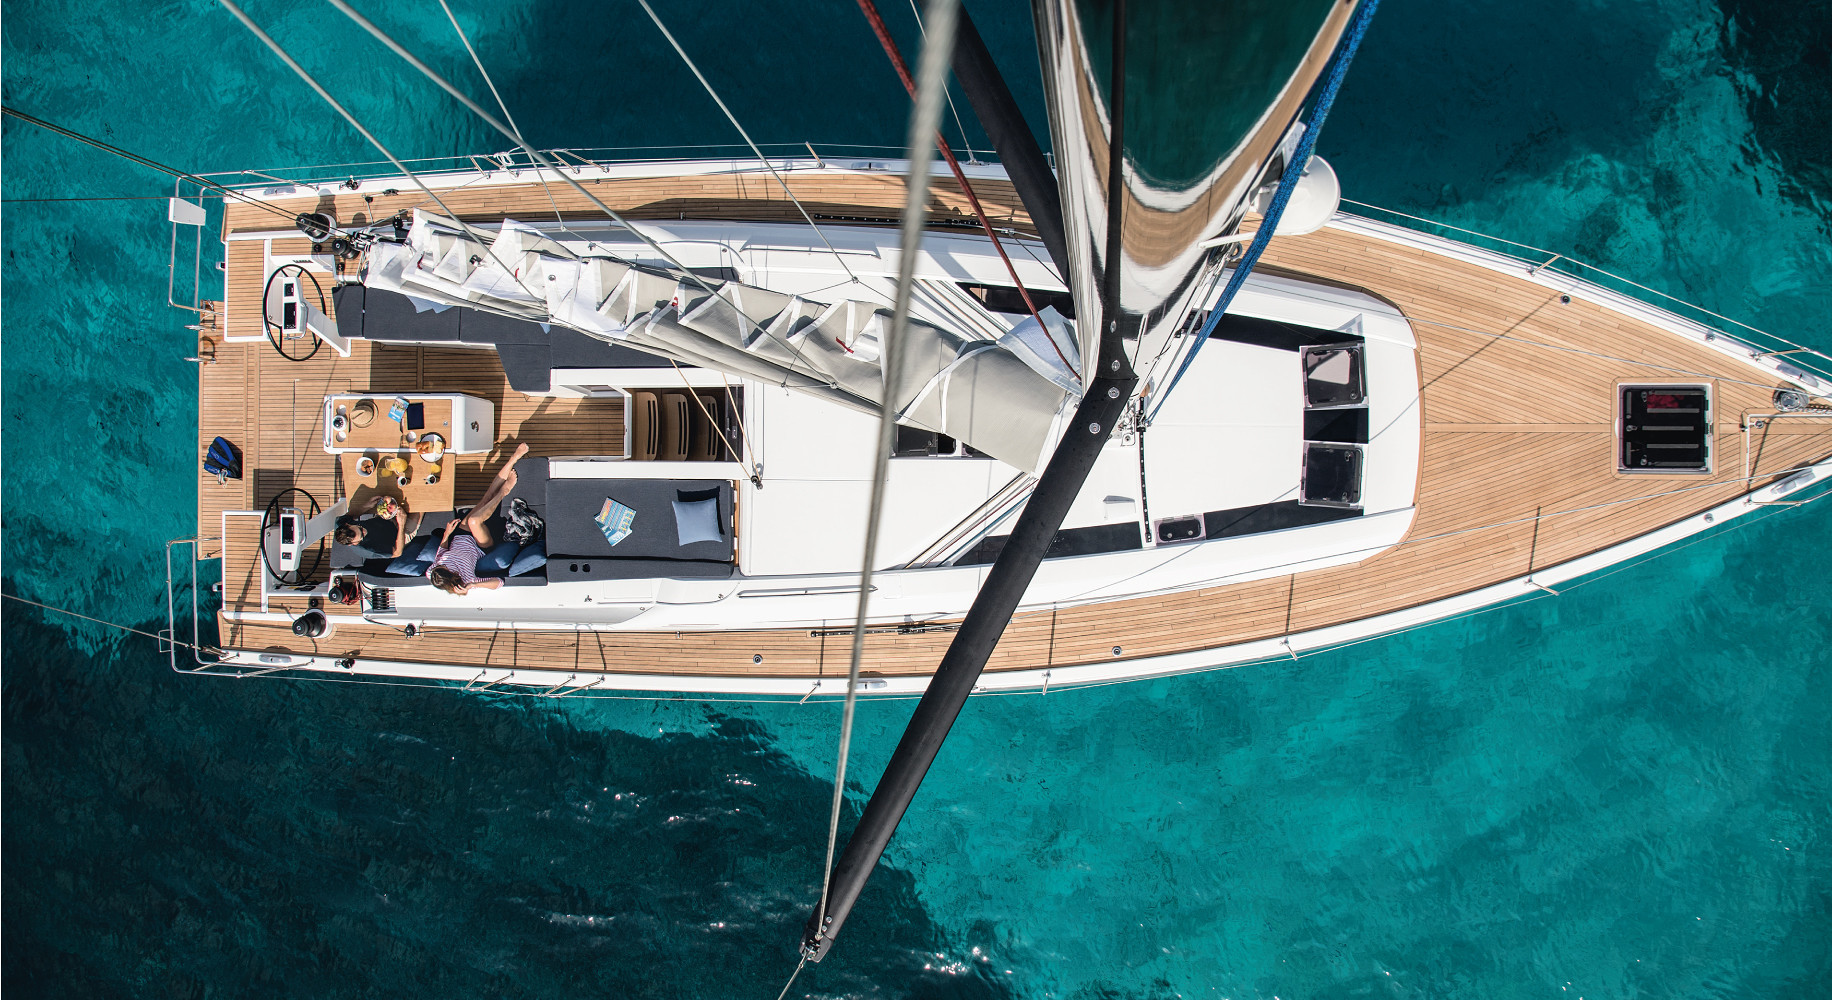 OCEANIS 51 Boat For Sale Abromowitz Shar